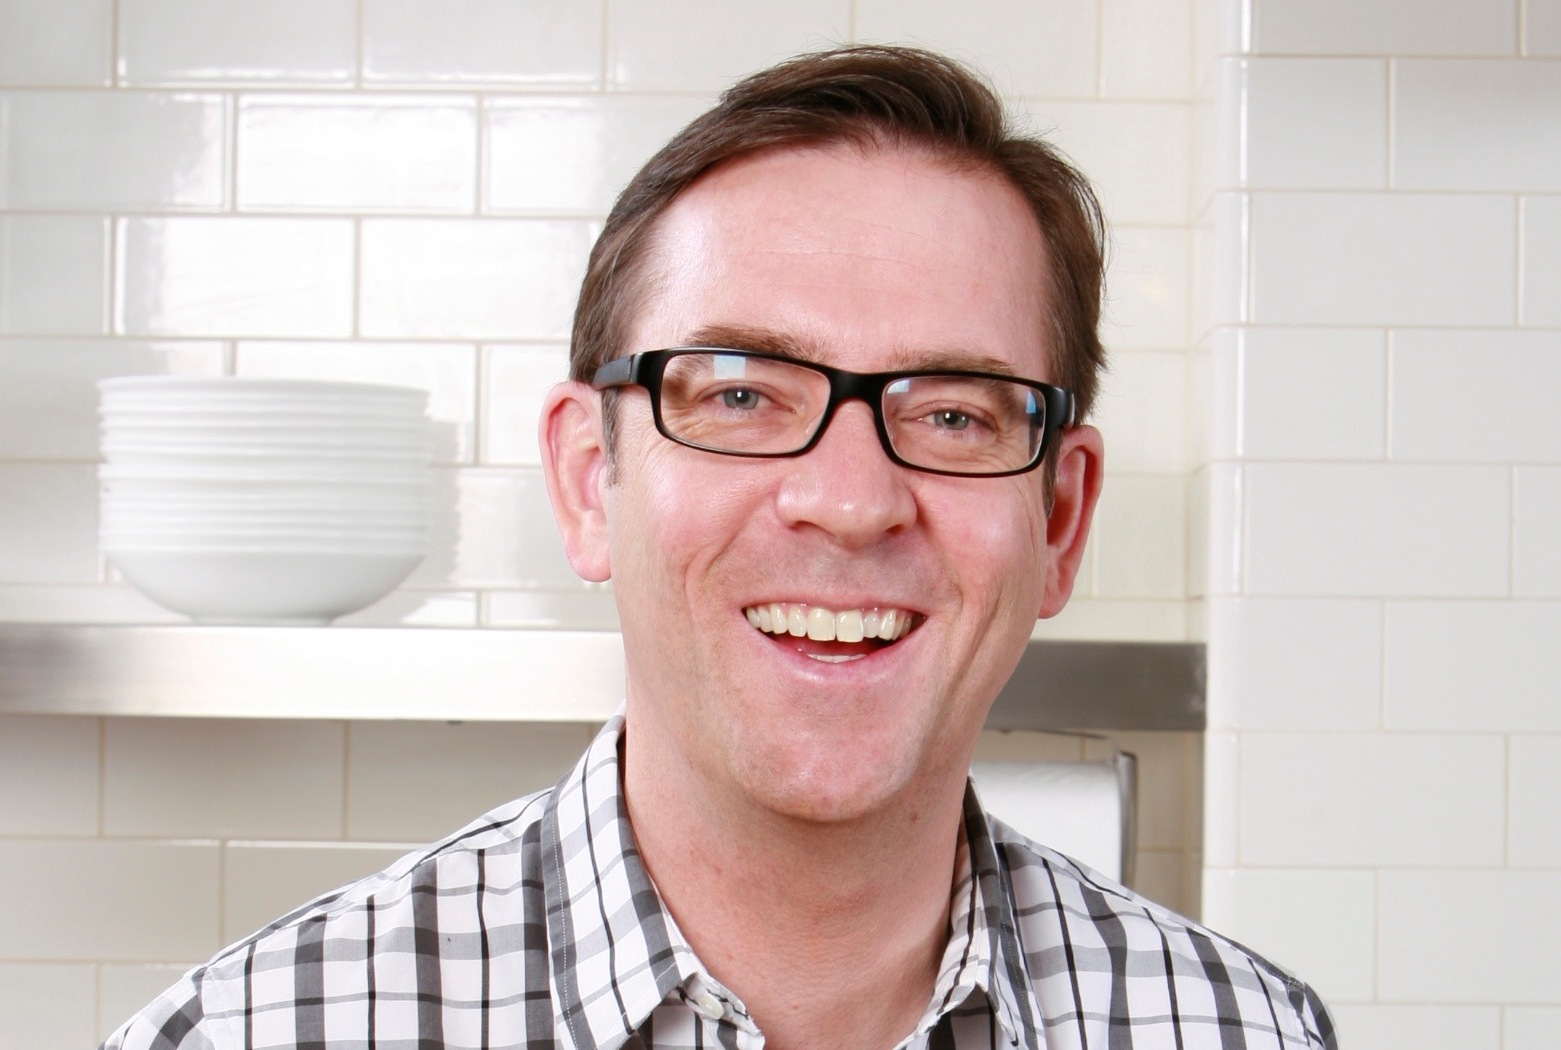 SPONSORED: Ted Allen's Picks for Bold Flavors in NYC